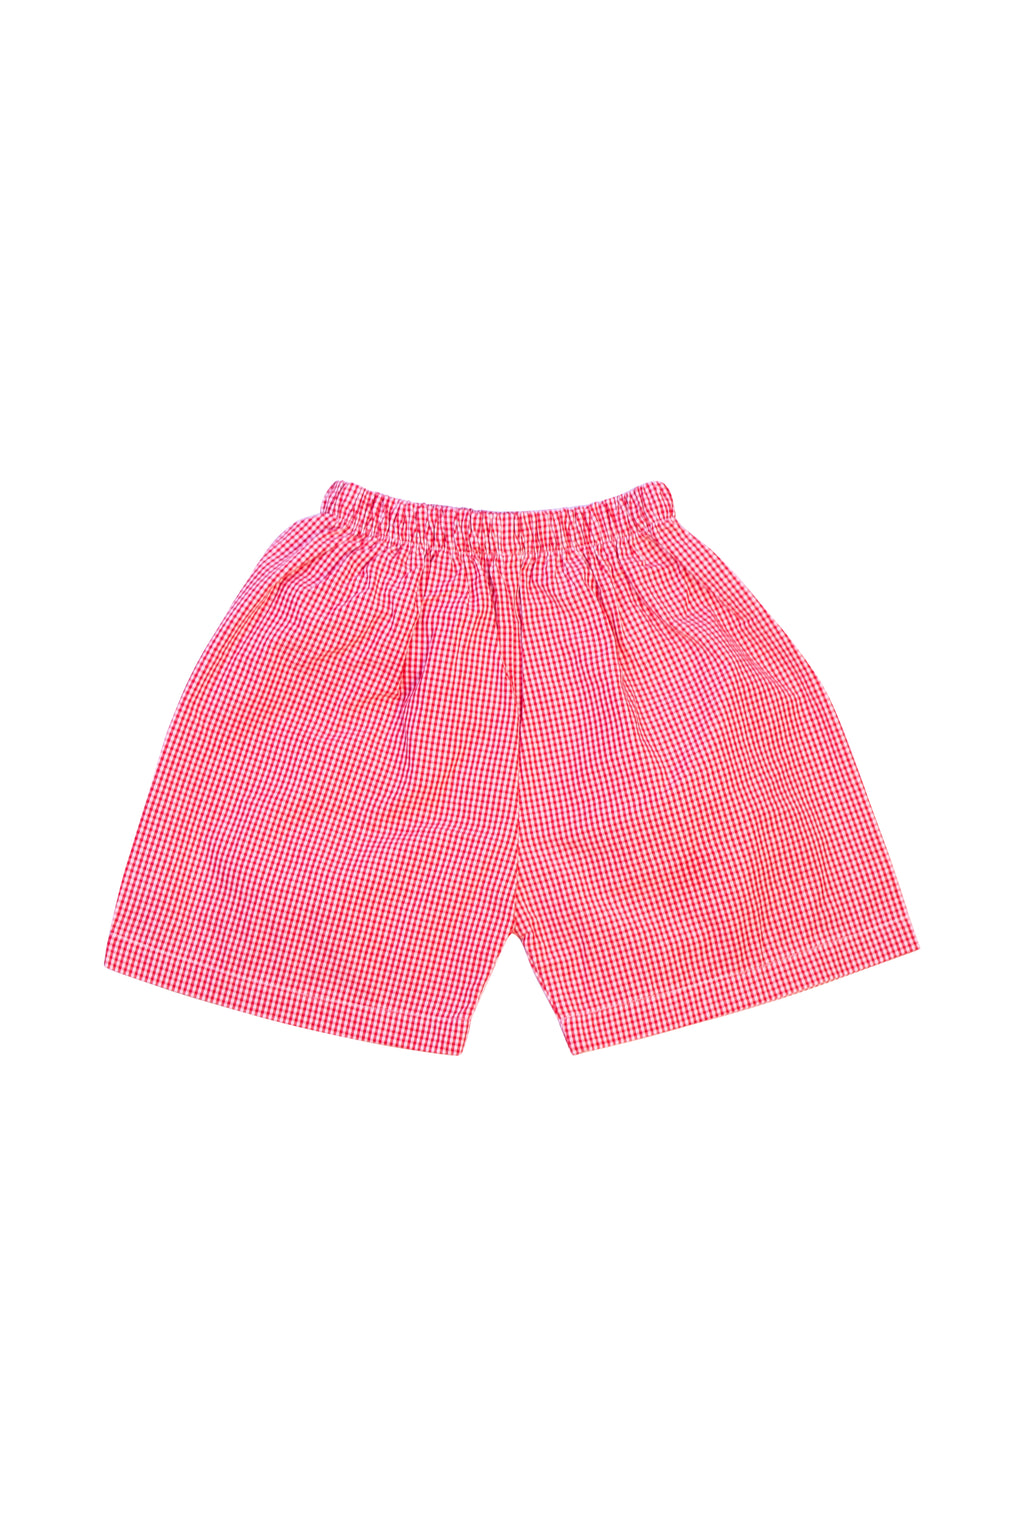 Unisex Red Gingham Shorts